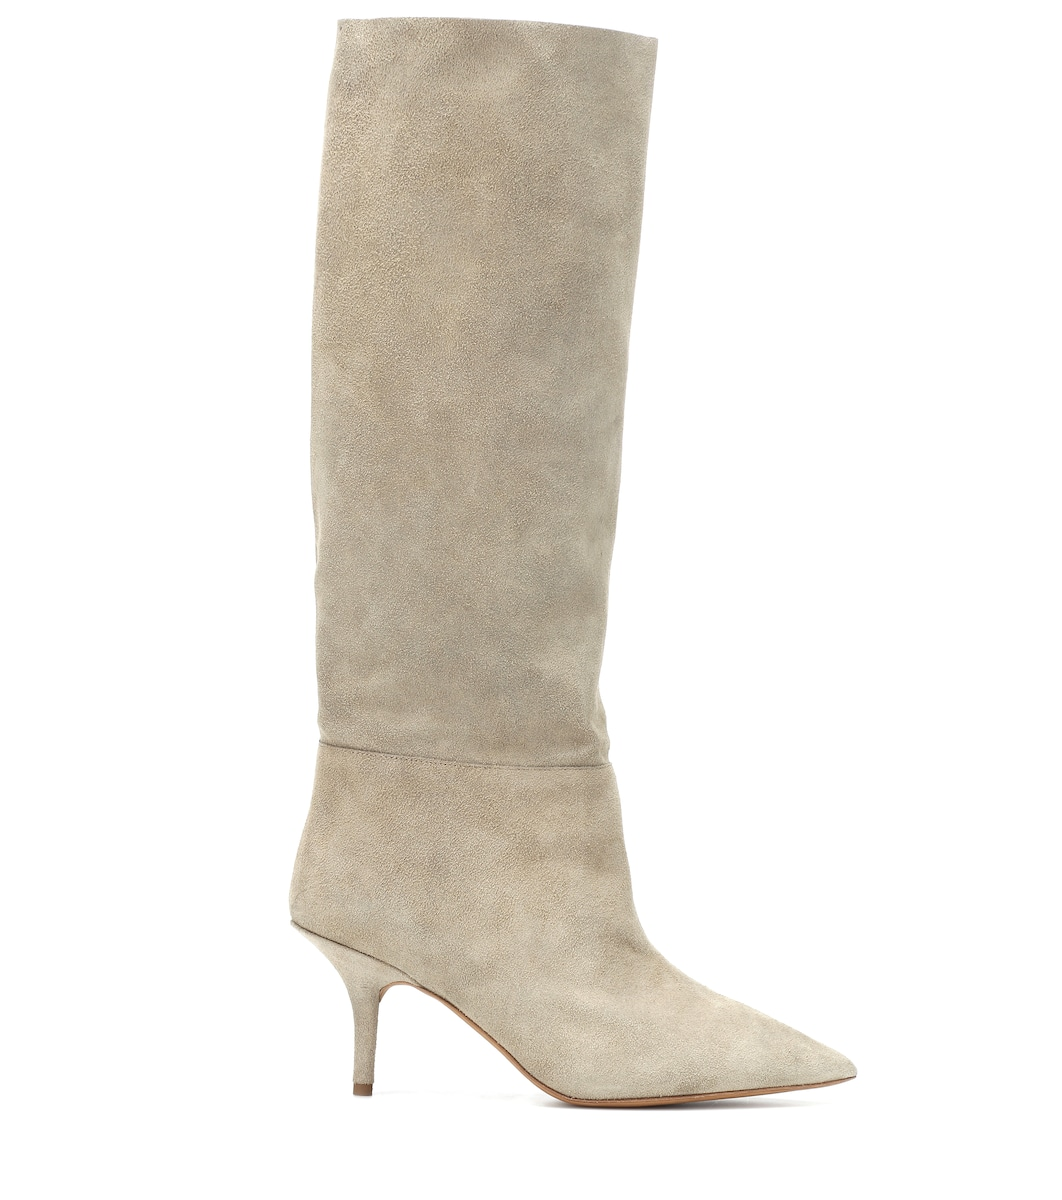 hot-selling genuine 100% authentic fashion style Suede knee-high boots (SEASON 7)